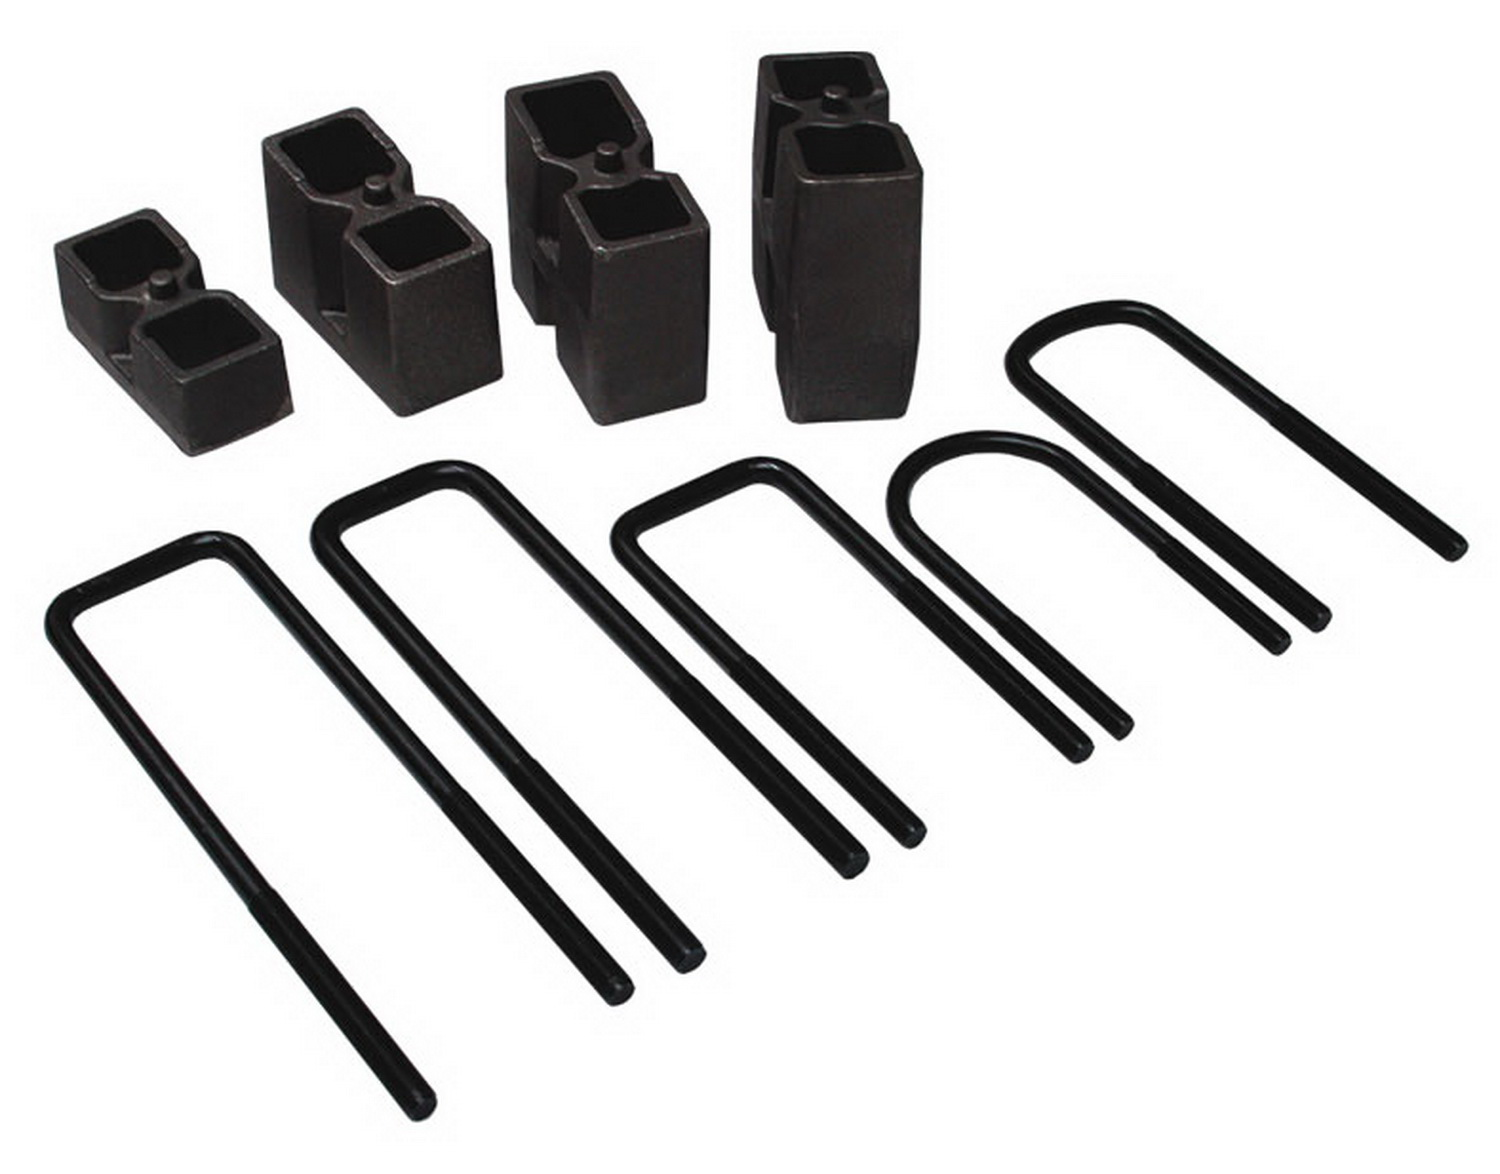 Skyjacker BUK4592 - Skyjacker Blocks & U-Bolt Kits